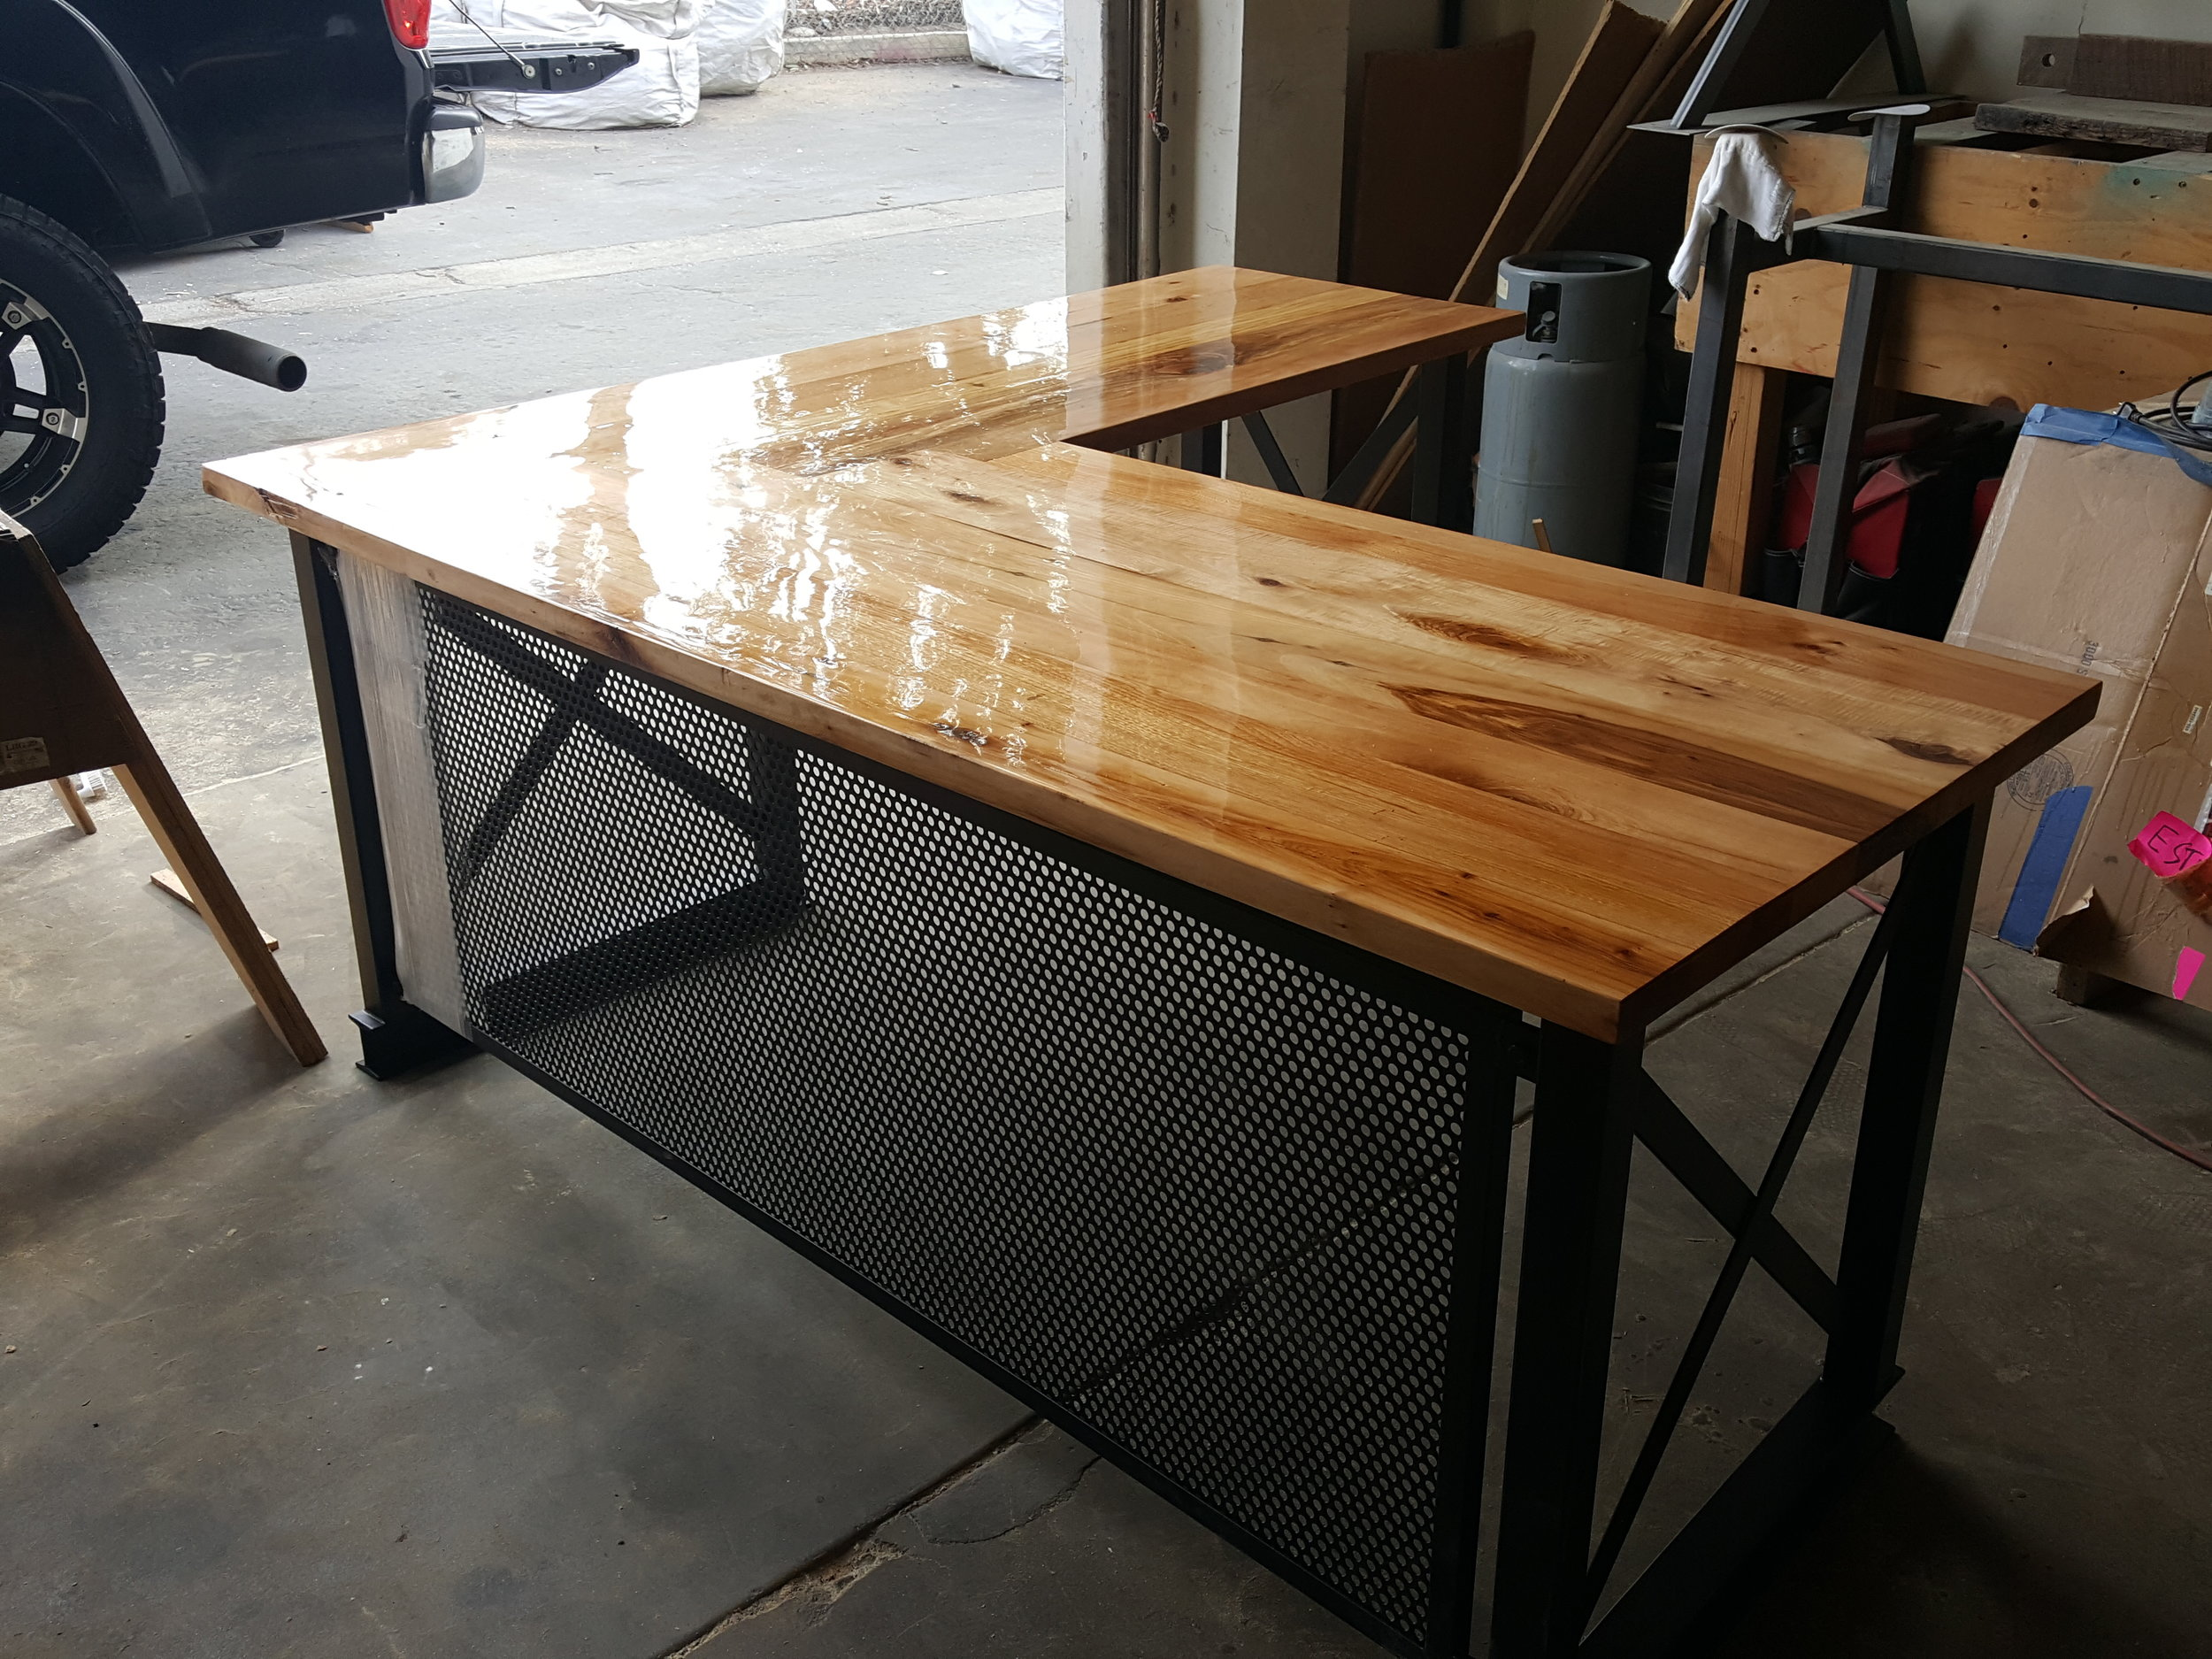 Custom desks with U.S. Reclaimed wood are one of the many custom pieces that are made and completed at our store in Laguna Niguel, California. All of our tables are built based on the design and preference of our customers. The desk in the above picture is complete with vintage U.S. wood along with a metal base that creates a wonderful style for a reclaimed wood desk. You can contact or visit our store to get started on a unique piece of reclaimed wood furniture.